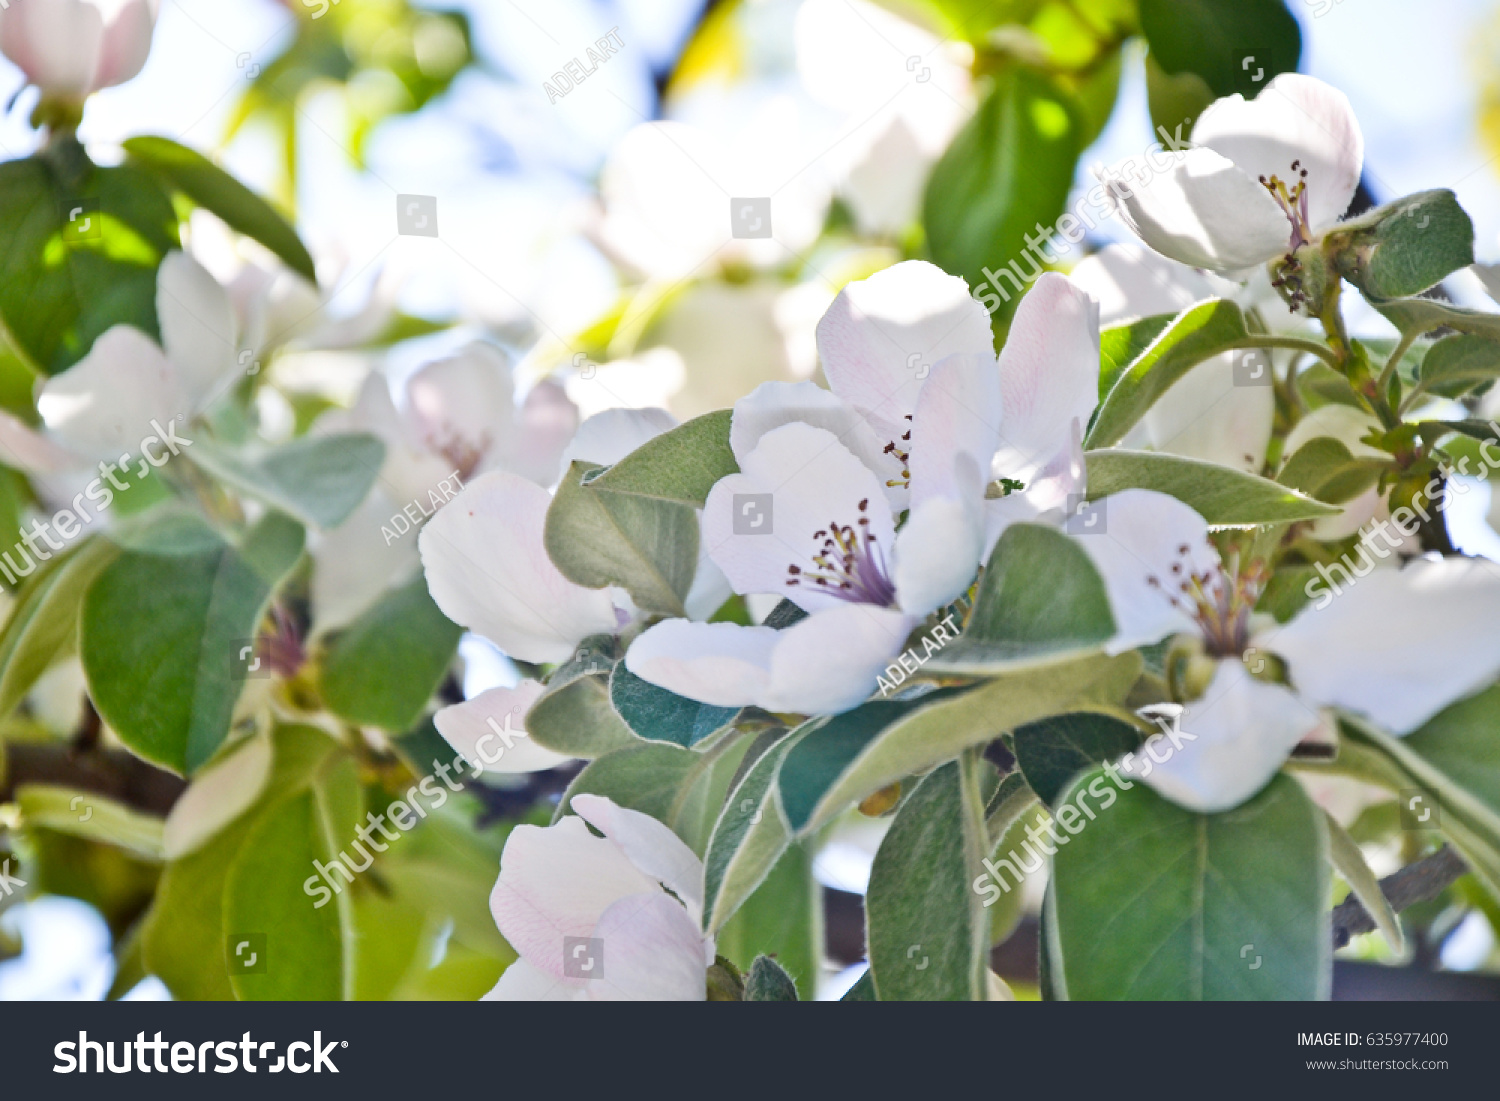 Quince blossom cydonia oblonga flowers spring stock photo quince blossom cydonia oblonga flowers spring fruit blossoming fruit tree march april biocorpaavc Image collections